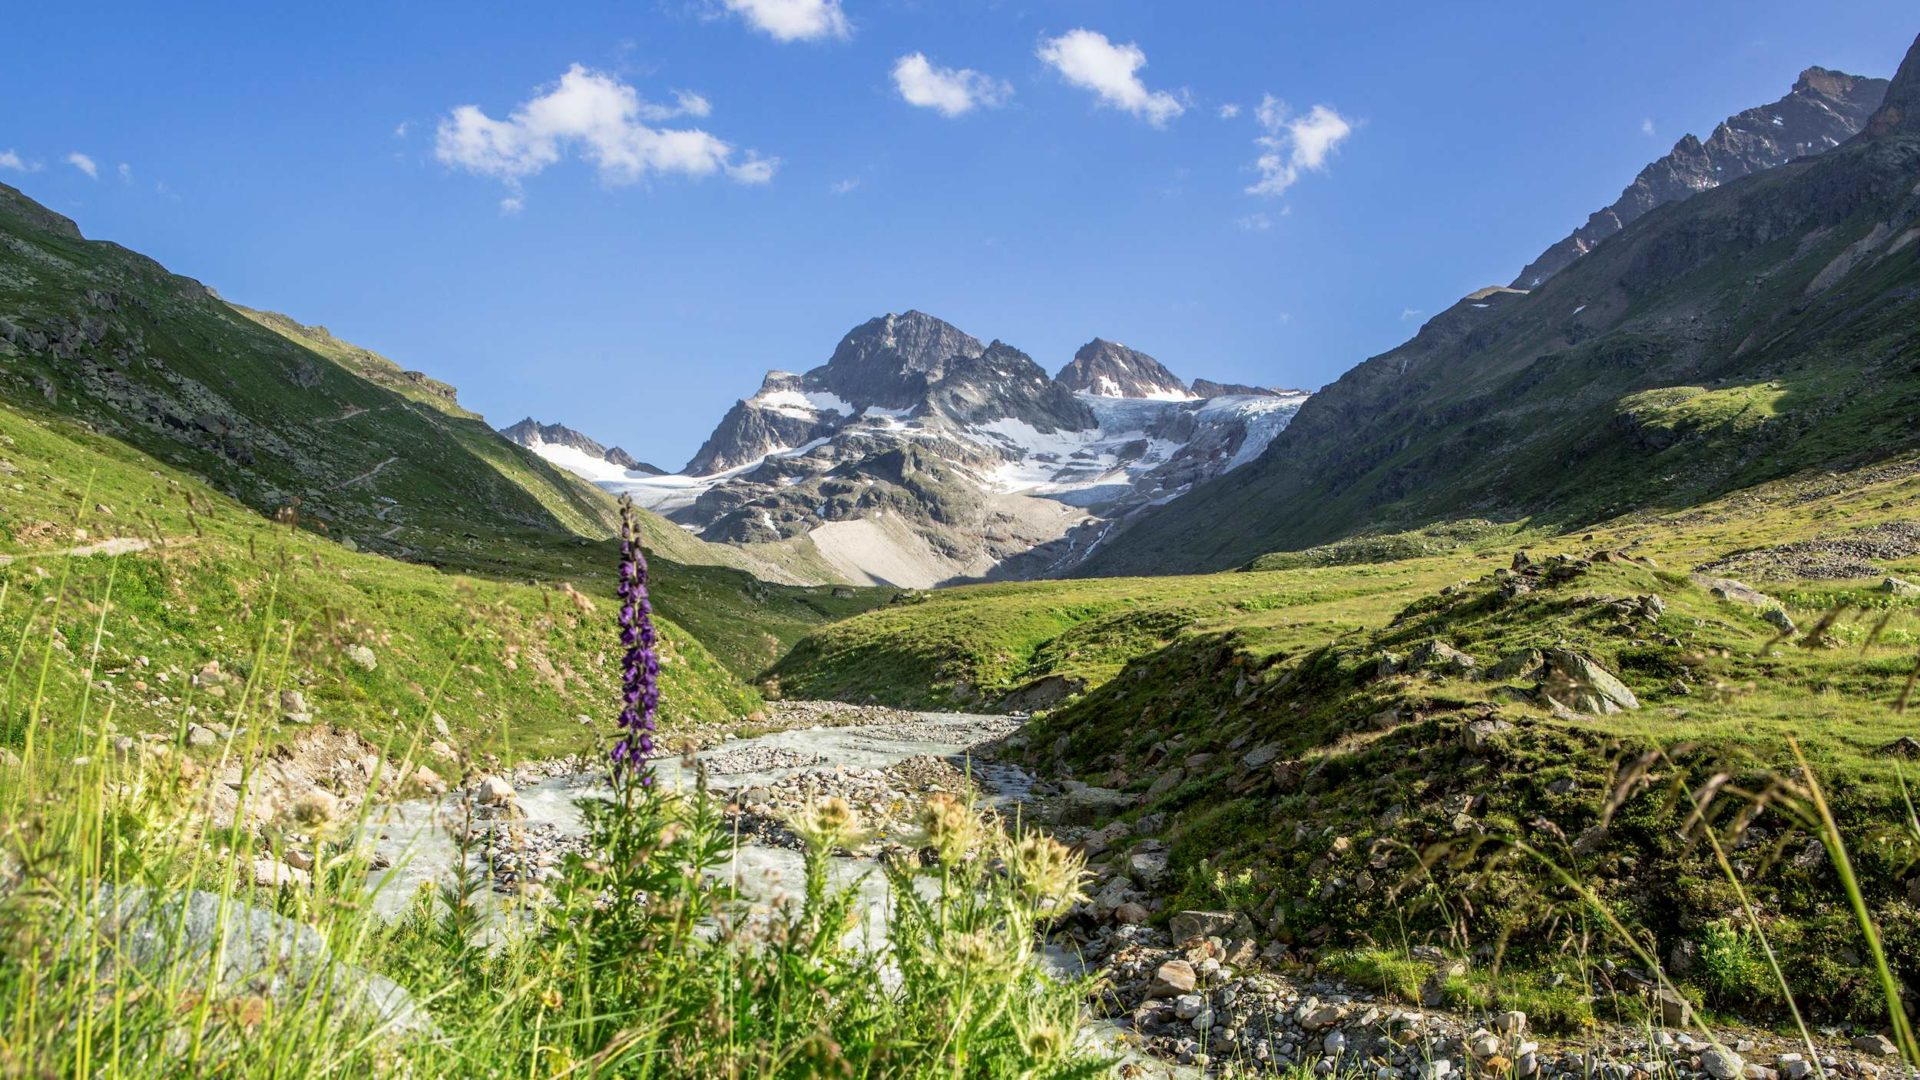 Spring in the Mountains, Piz Buin, Montafon (c) Stefan Kothner / Montafon Tourismus